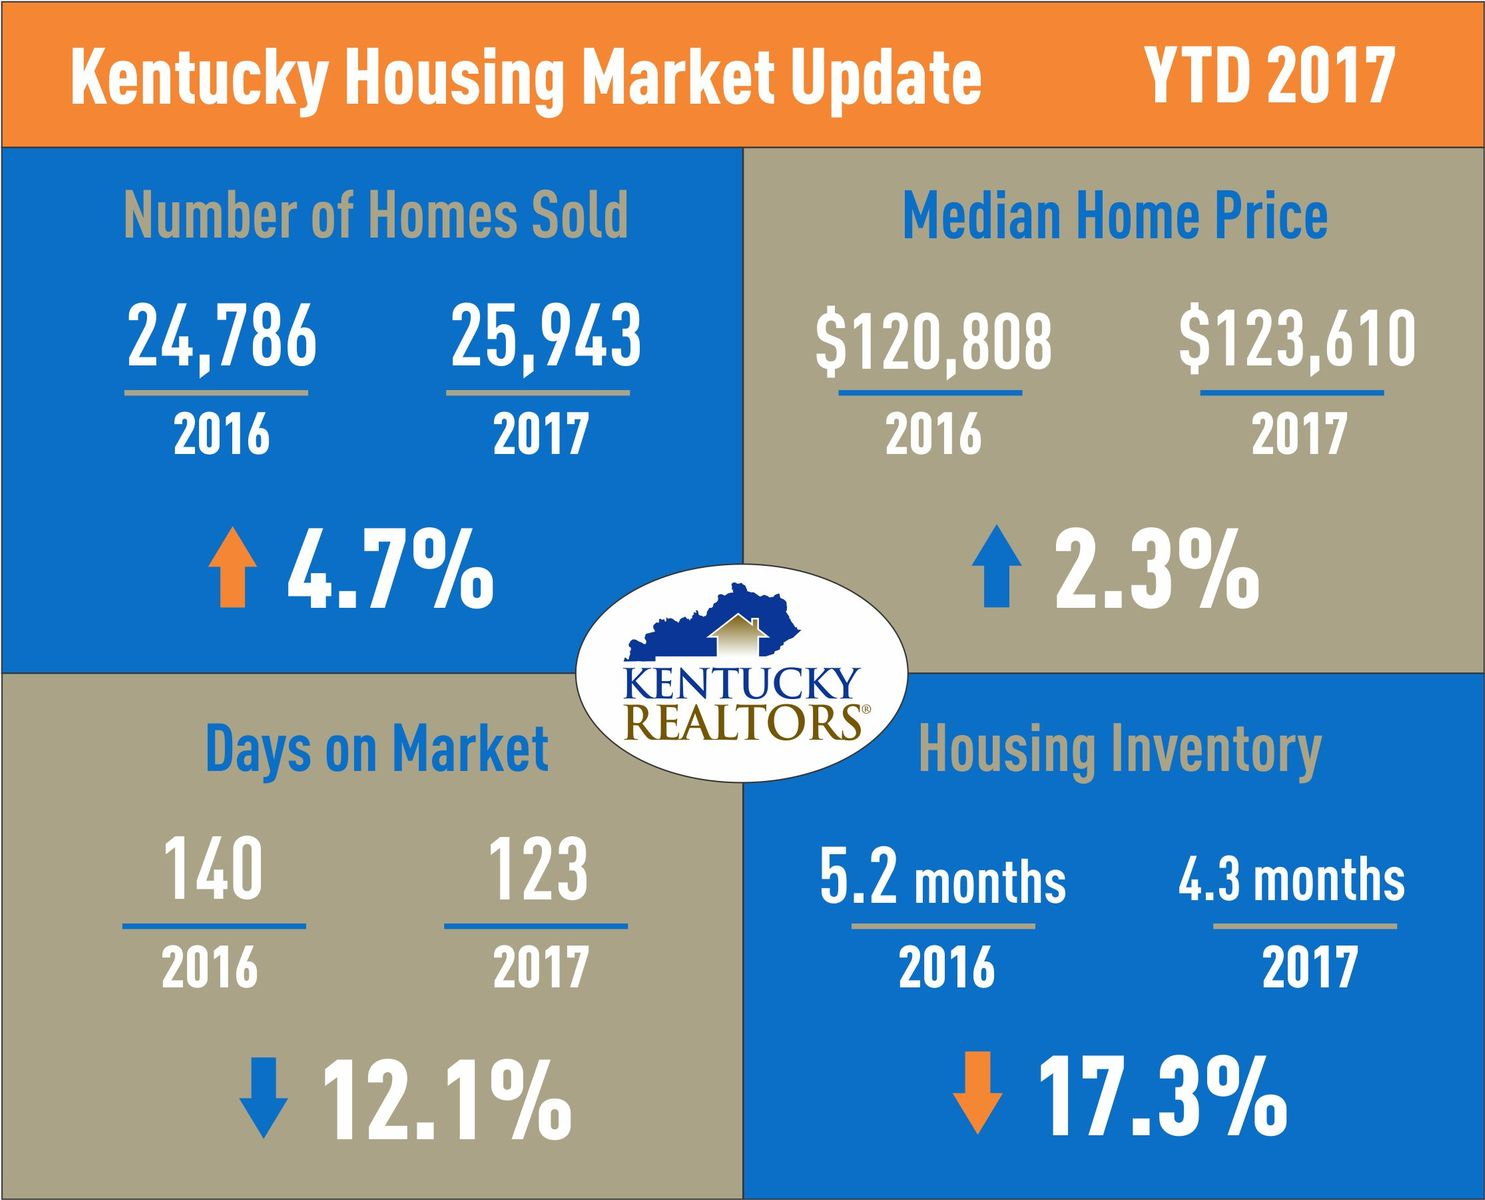 Kentucky Housing Market Update YTD 2017